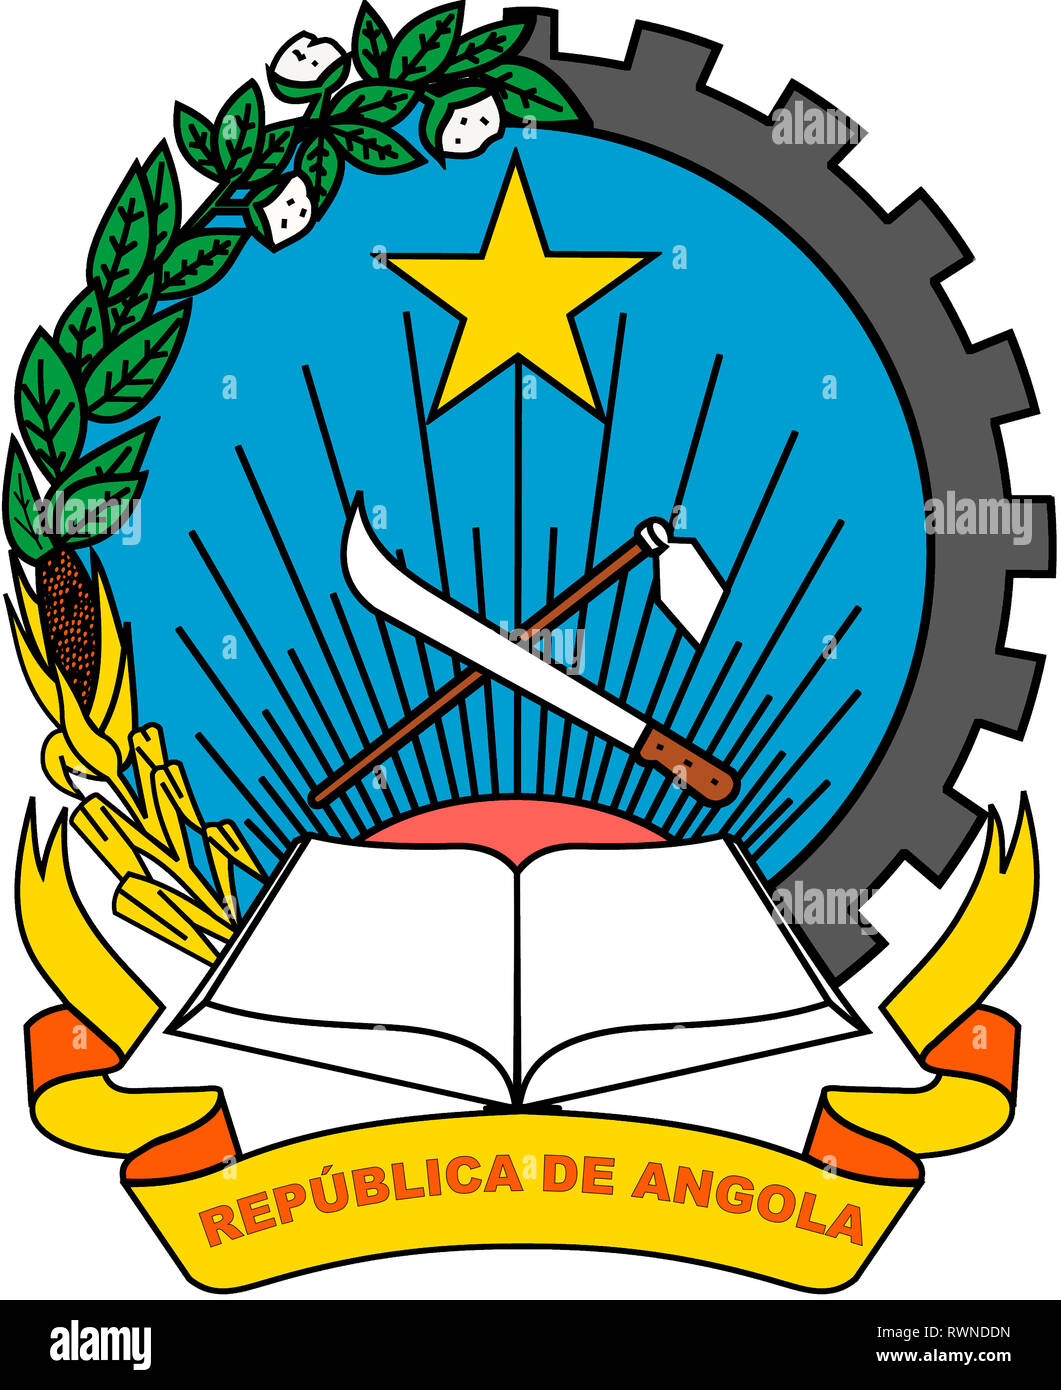 National coat o arms of the Republic of Angola. - Stock Image